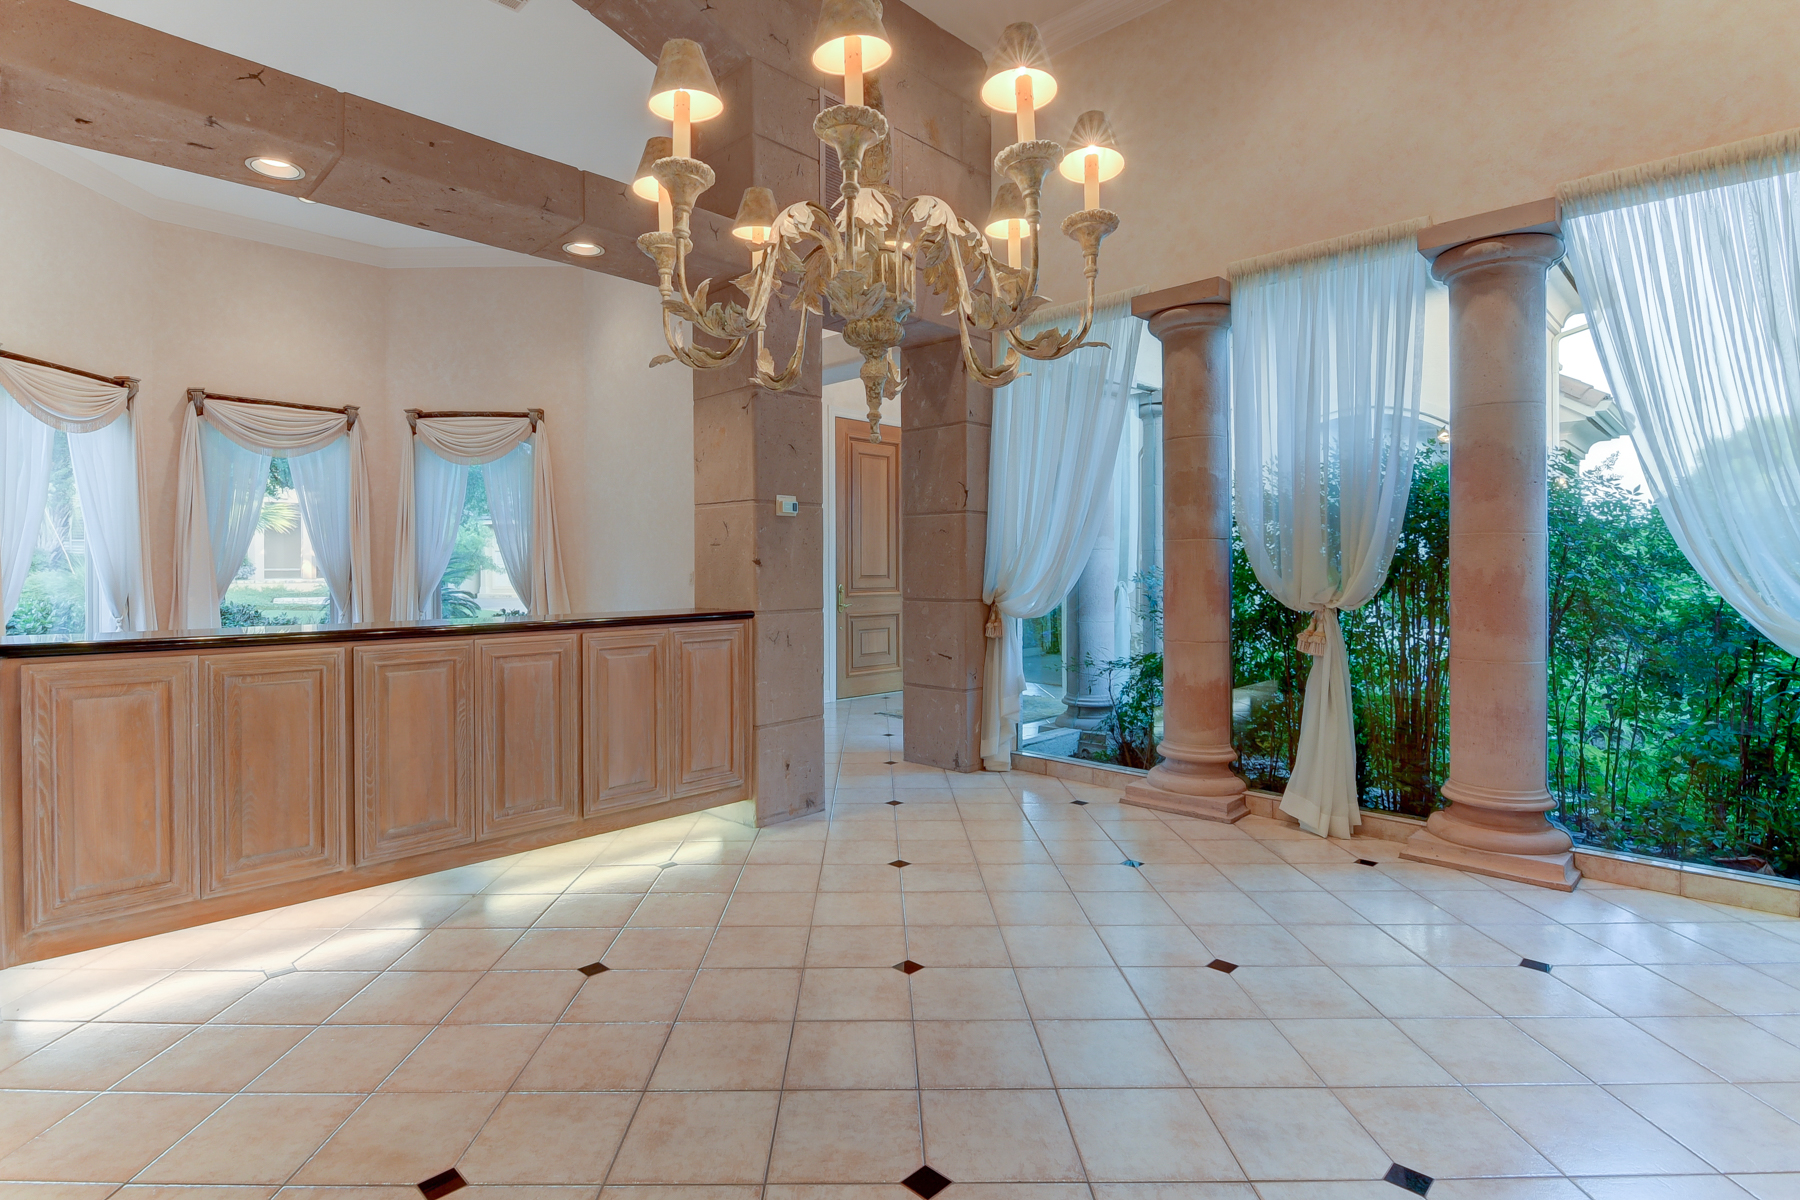 Additional photo for property listing at Gorgeous Gem in The Dominion 11 Kings Heath San Antonio, Texas 78257 United States